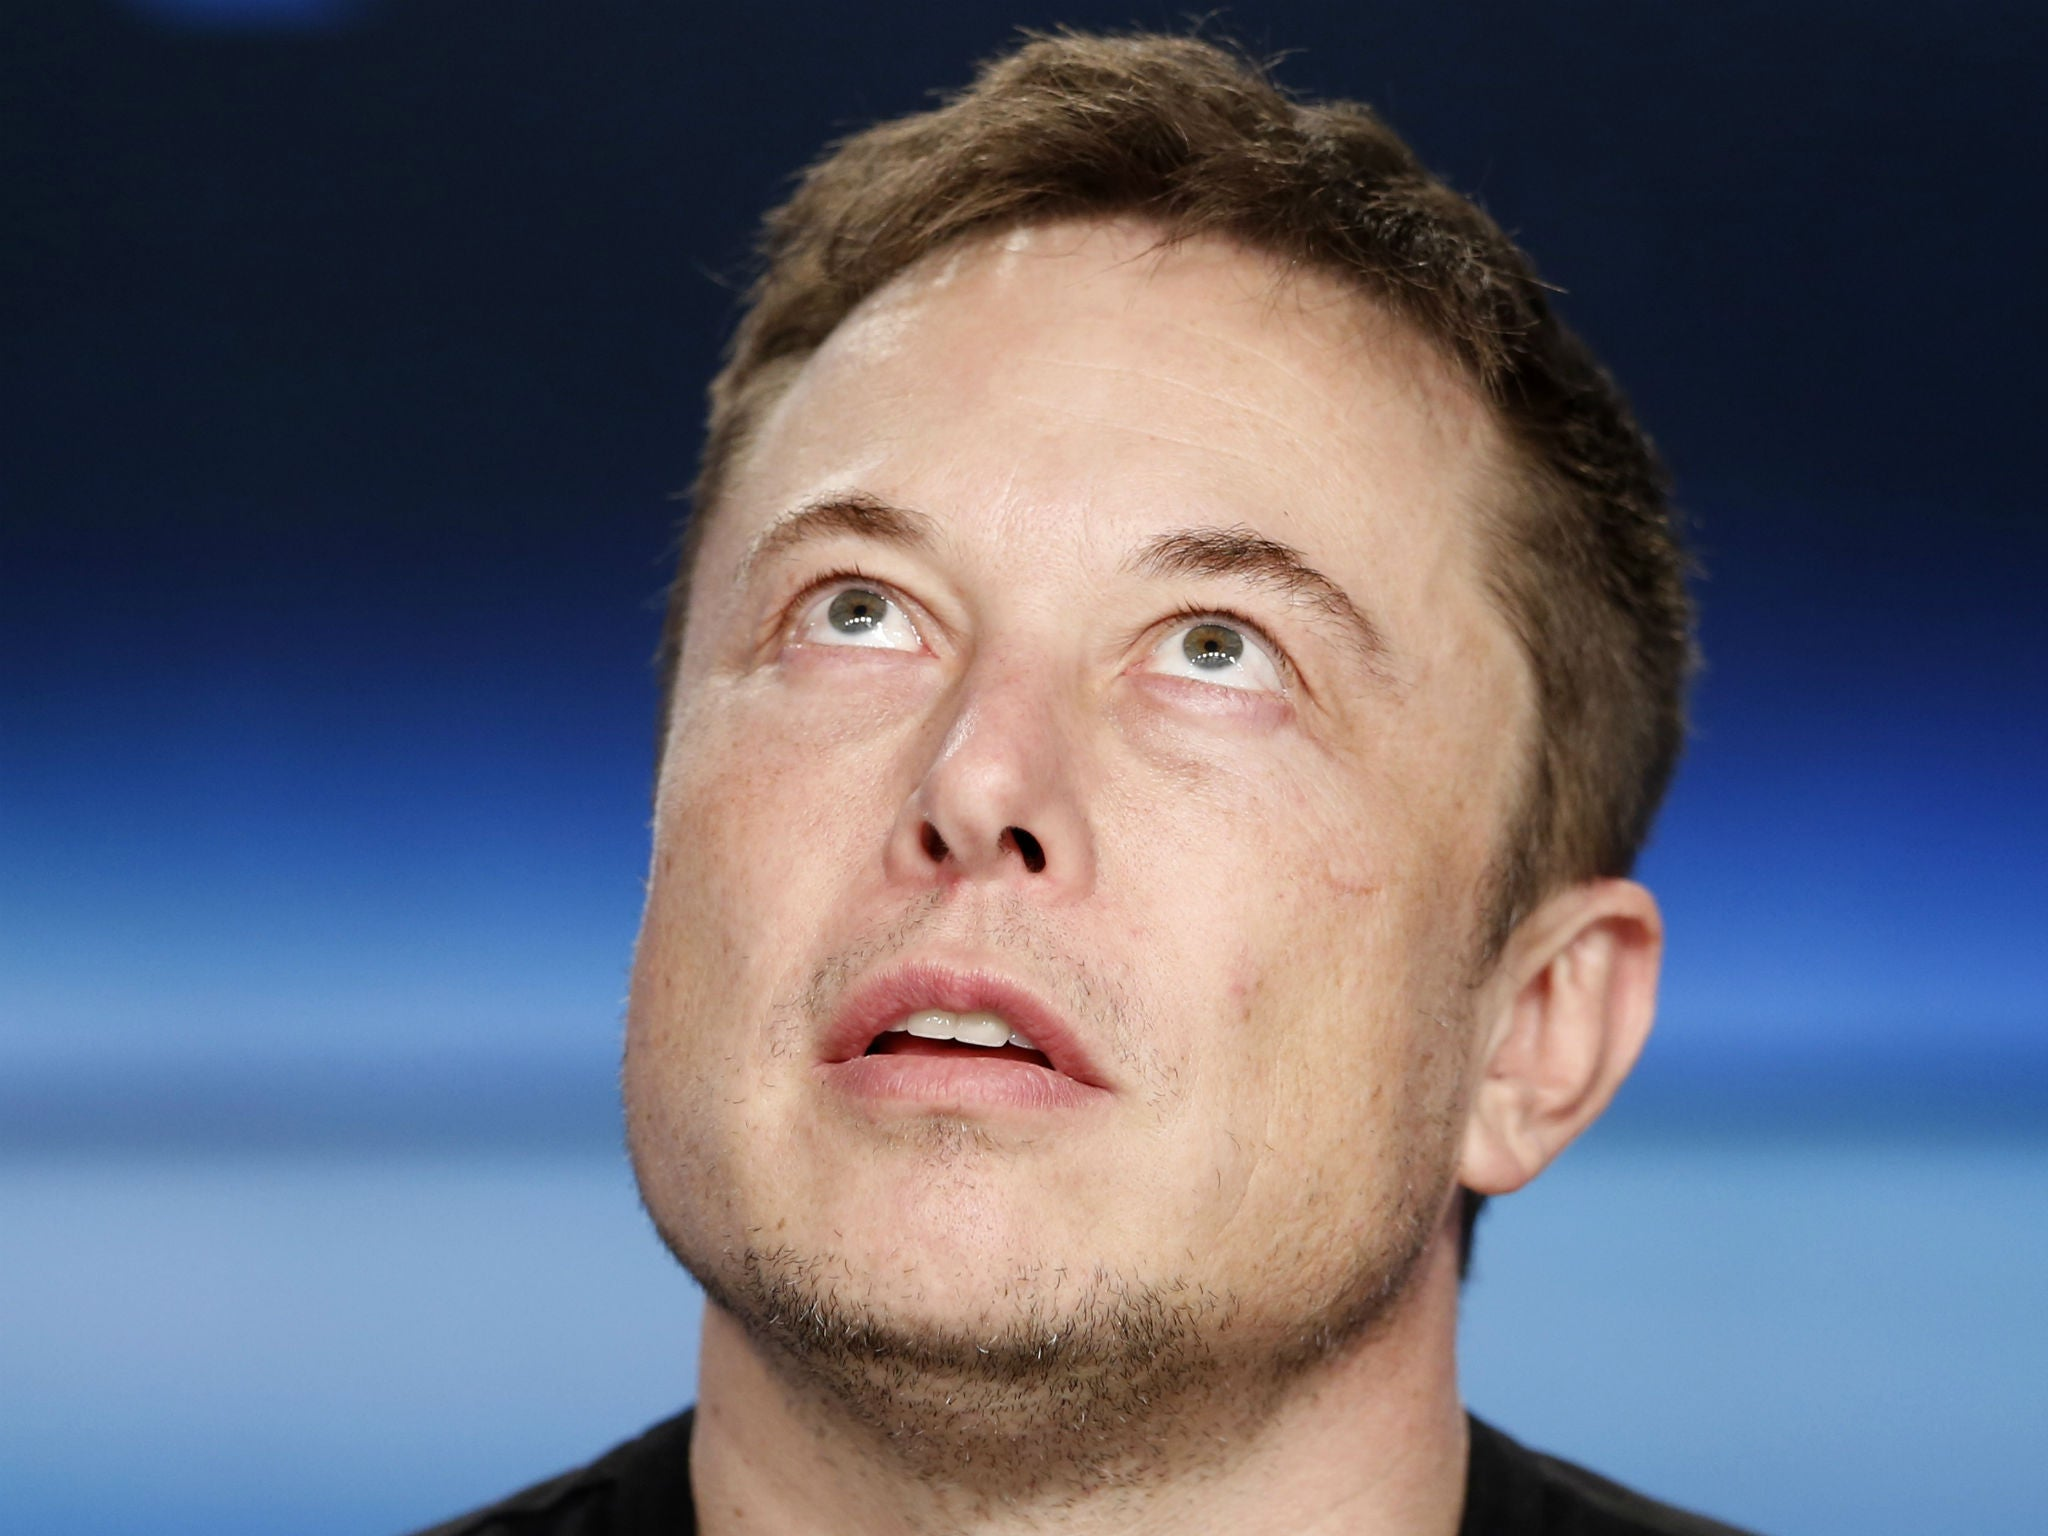 Someone goaded Elon Musk into fixing Flint's water problems